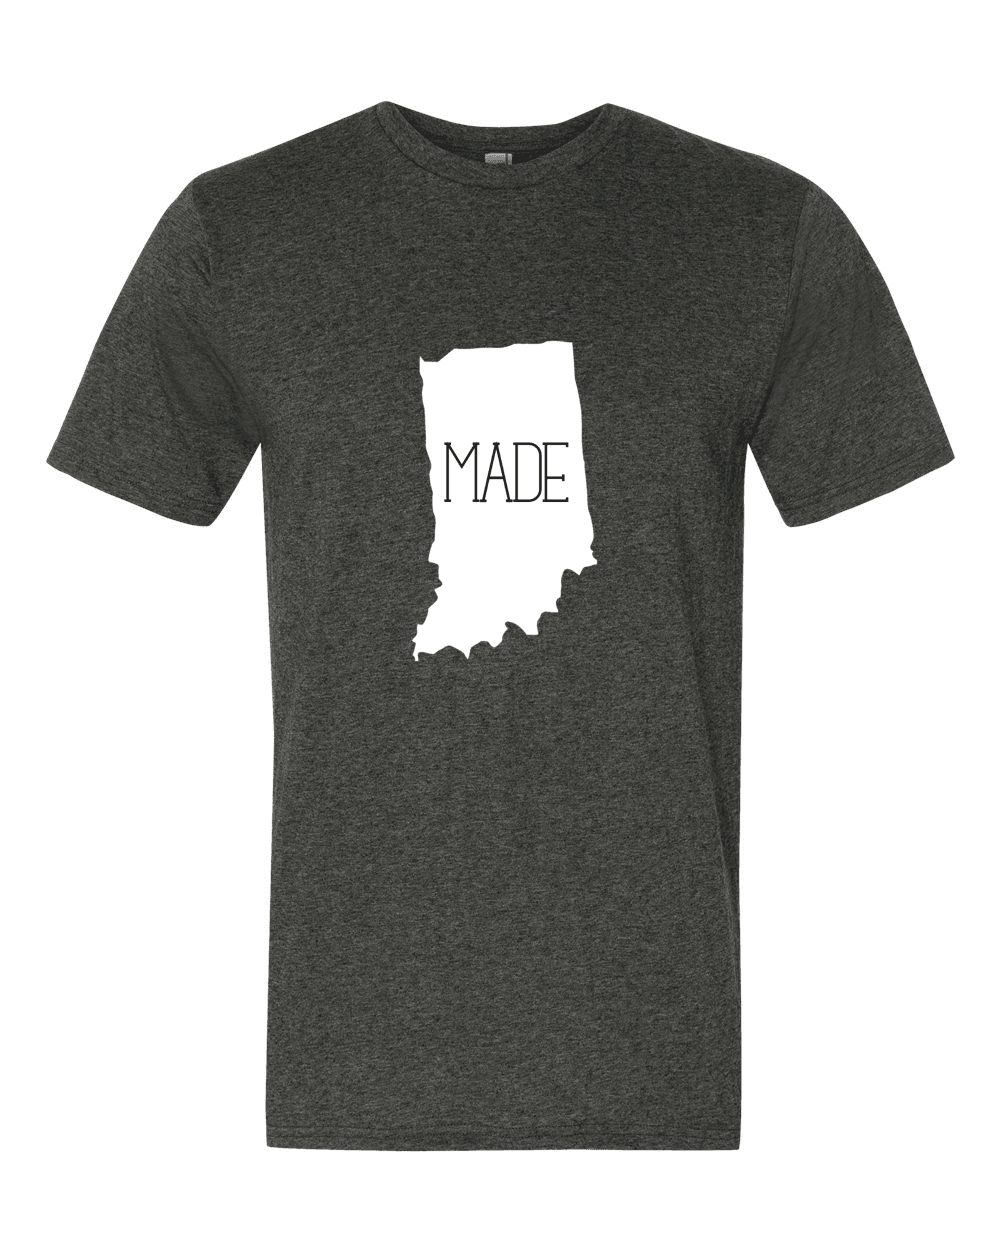 Apparel - Made in Indiana Tee - Small / Black - District 31 - 1